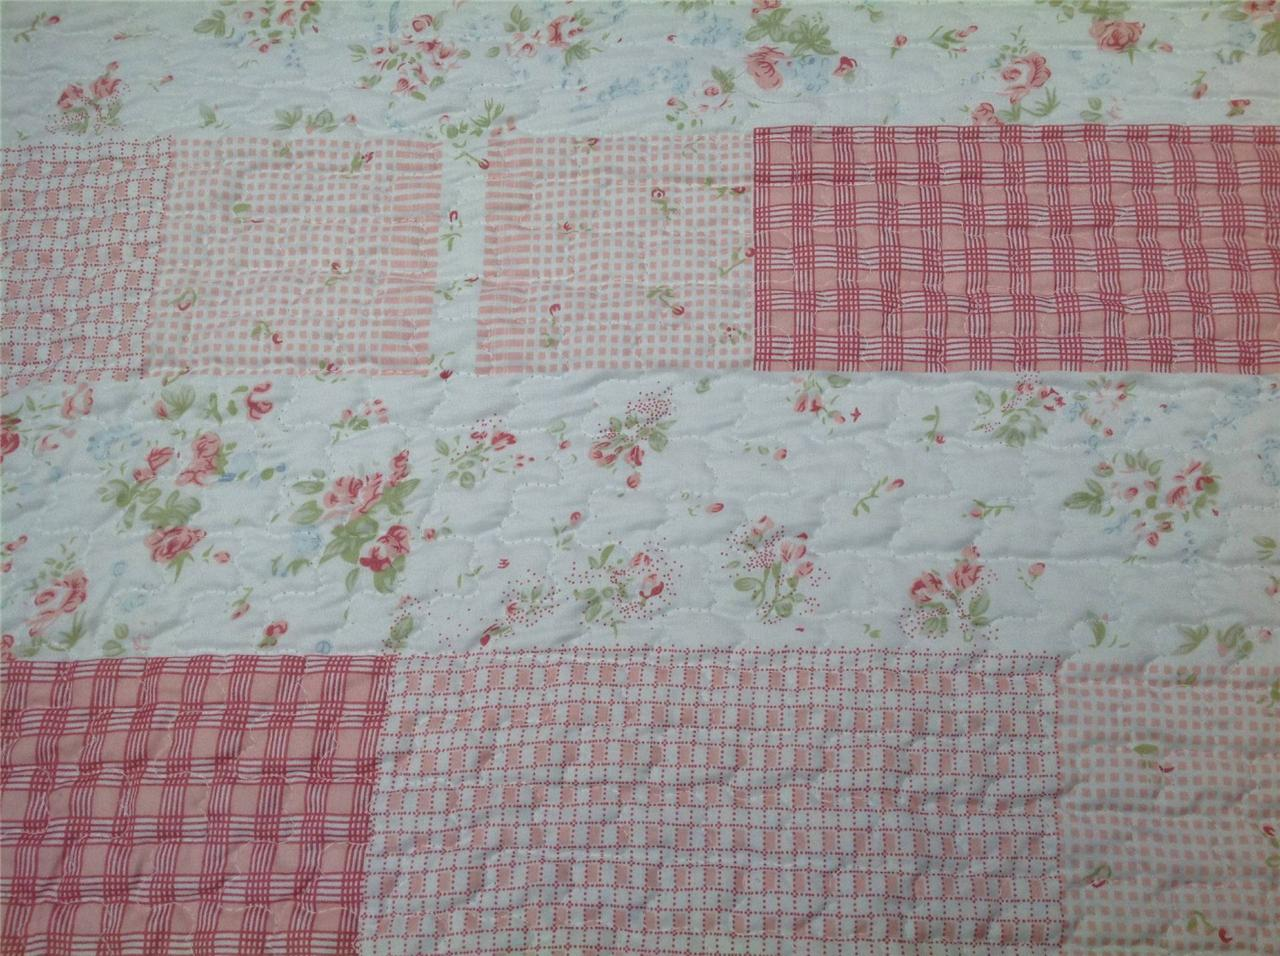 quilt patchwork tagesdecke shabby chic 130 x 200 rosen ebay. Black Bedroom Furniture Sets. Home Design Ideas